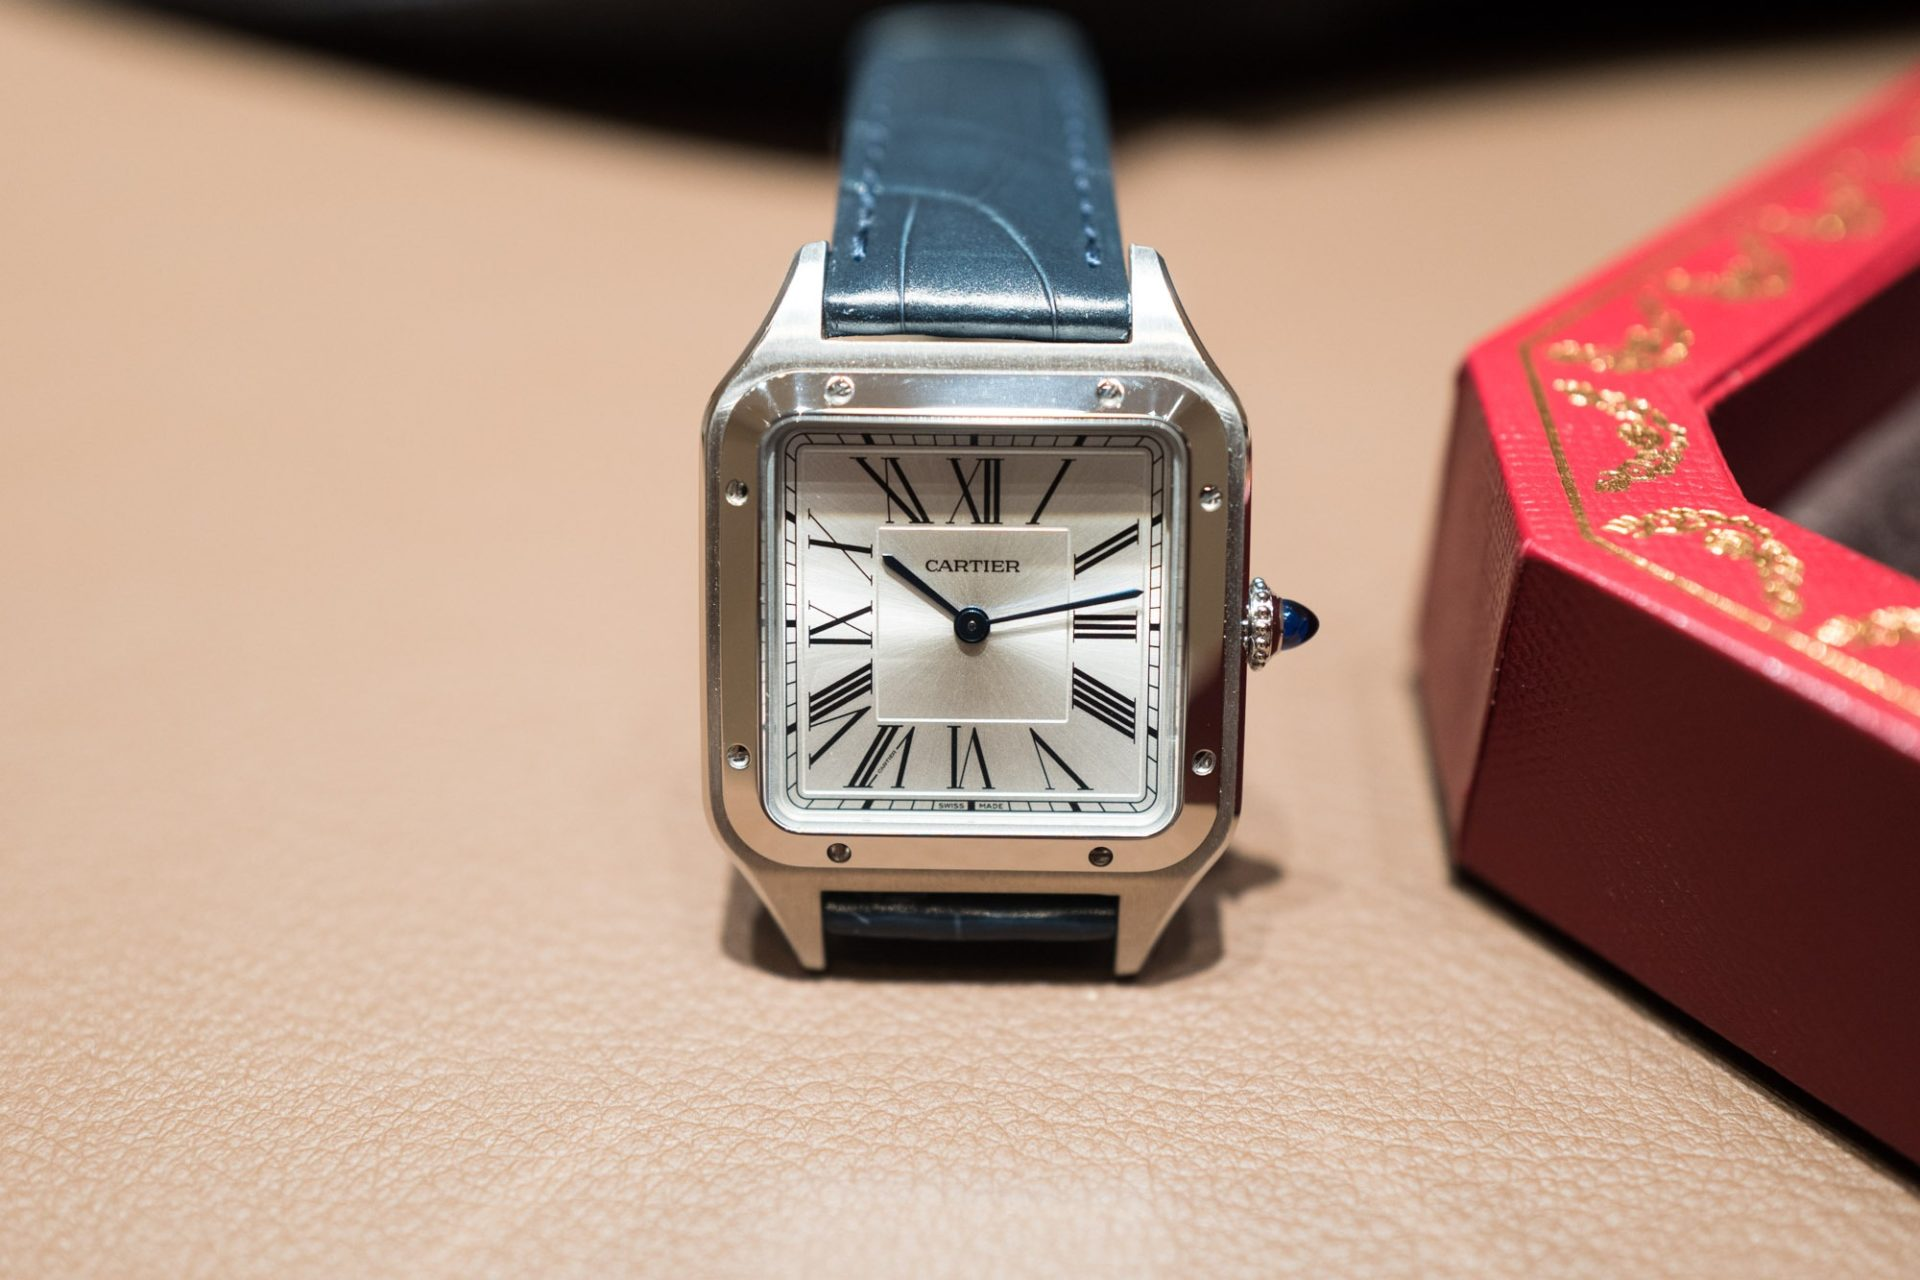 SIHH 2019 - Santos de Cartier quartz - Look